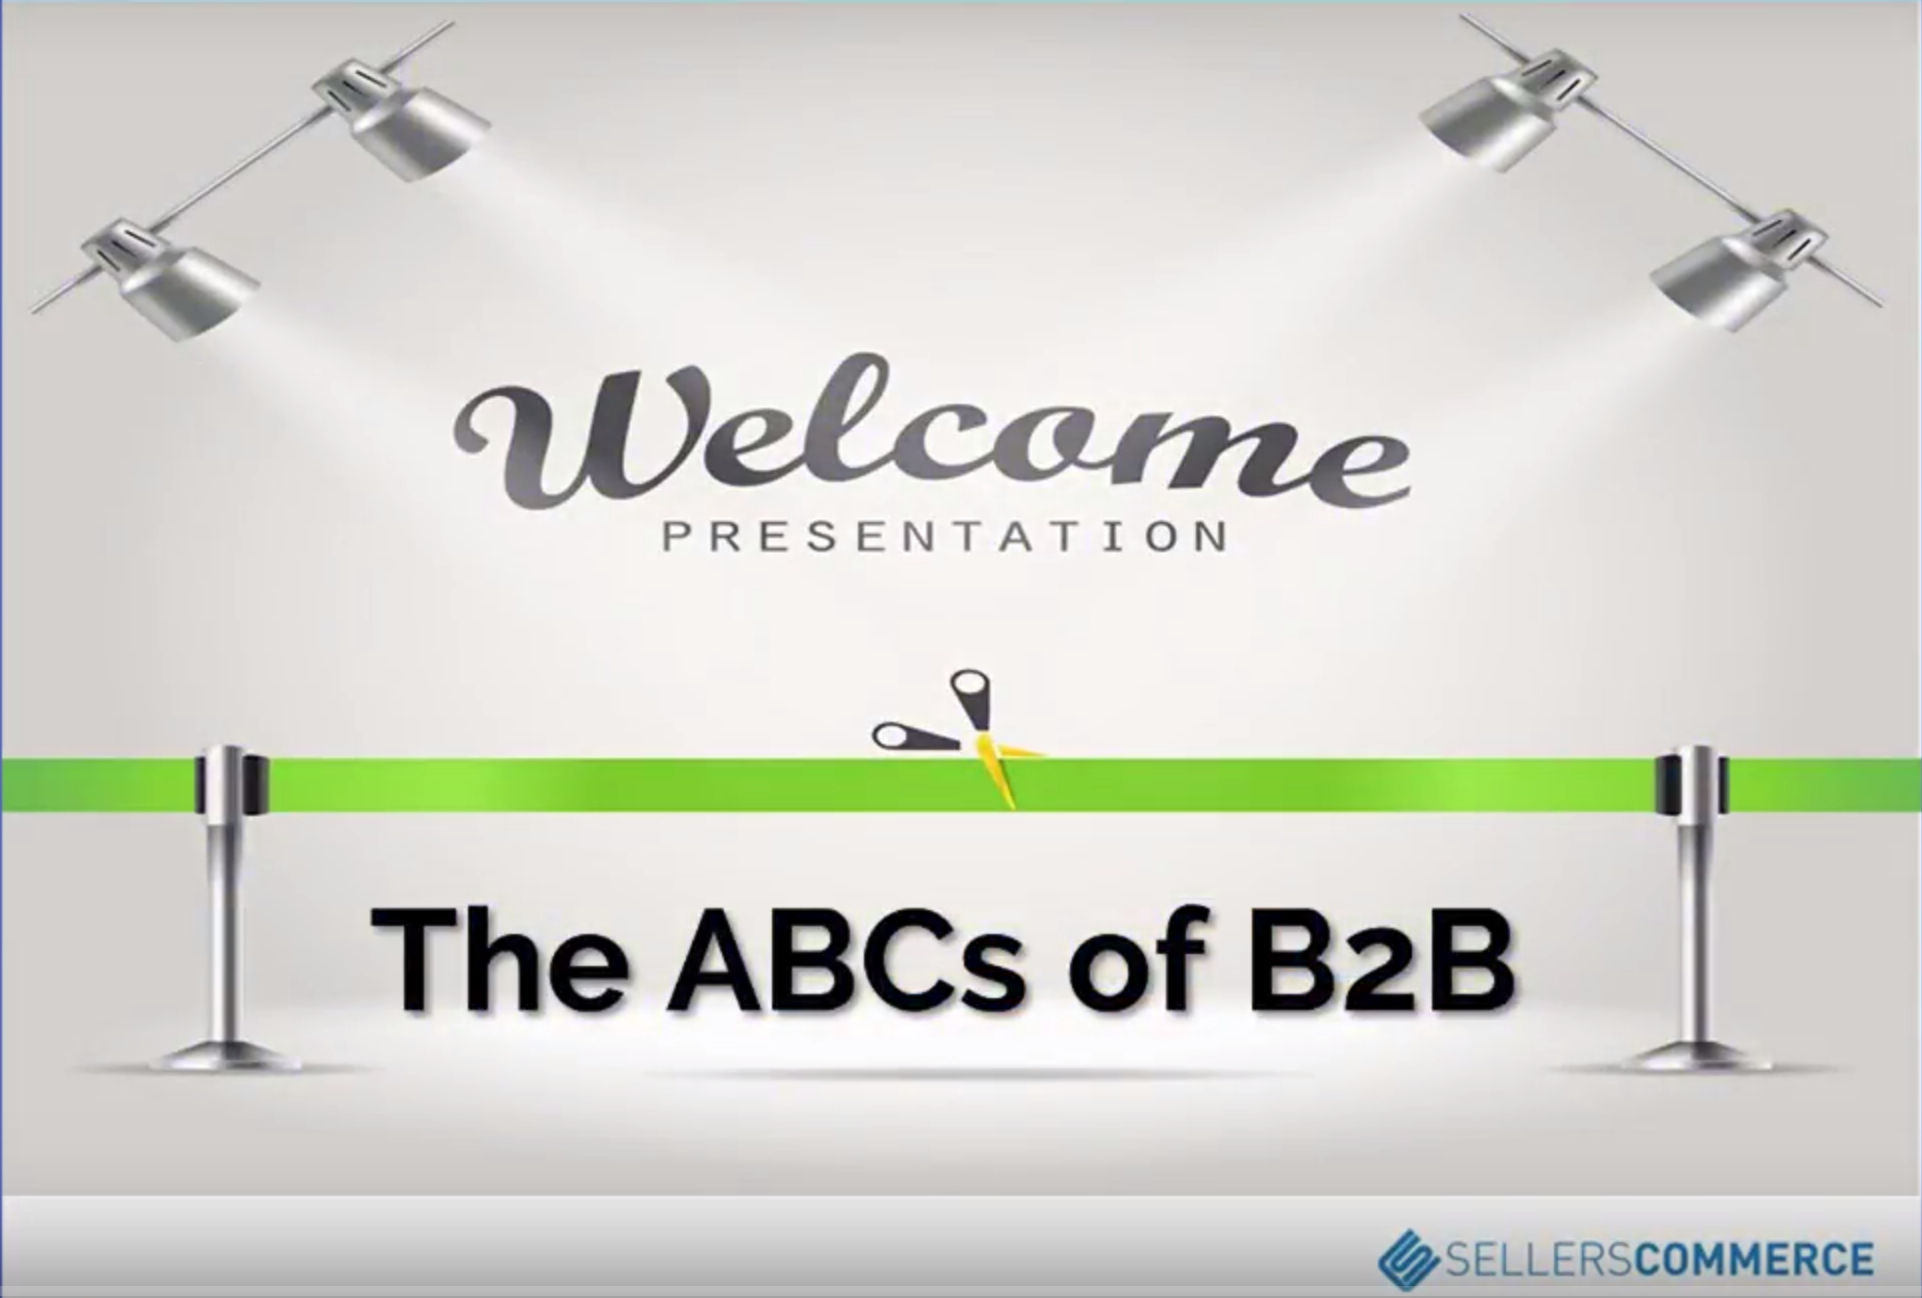 abcs-of-b2b-slide.png